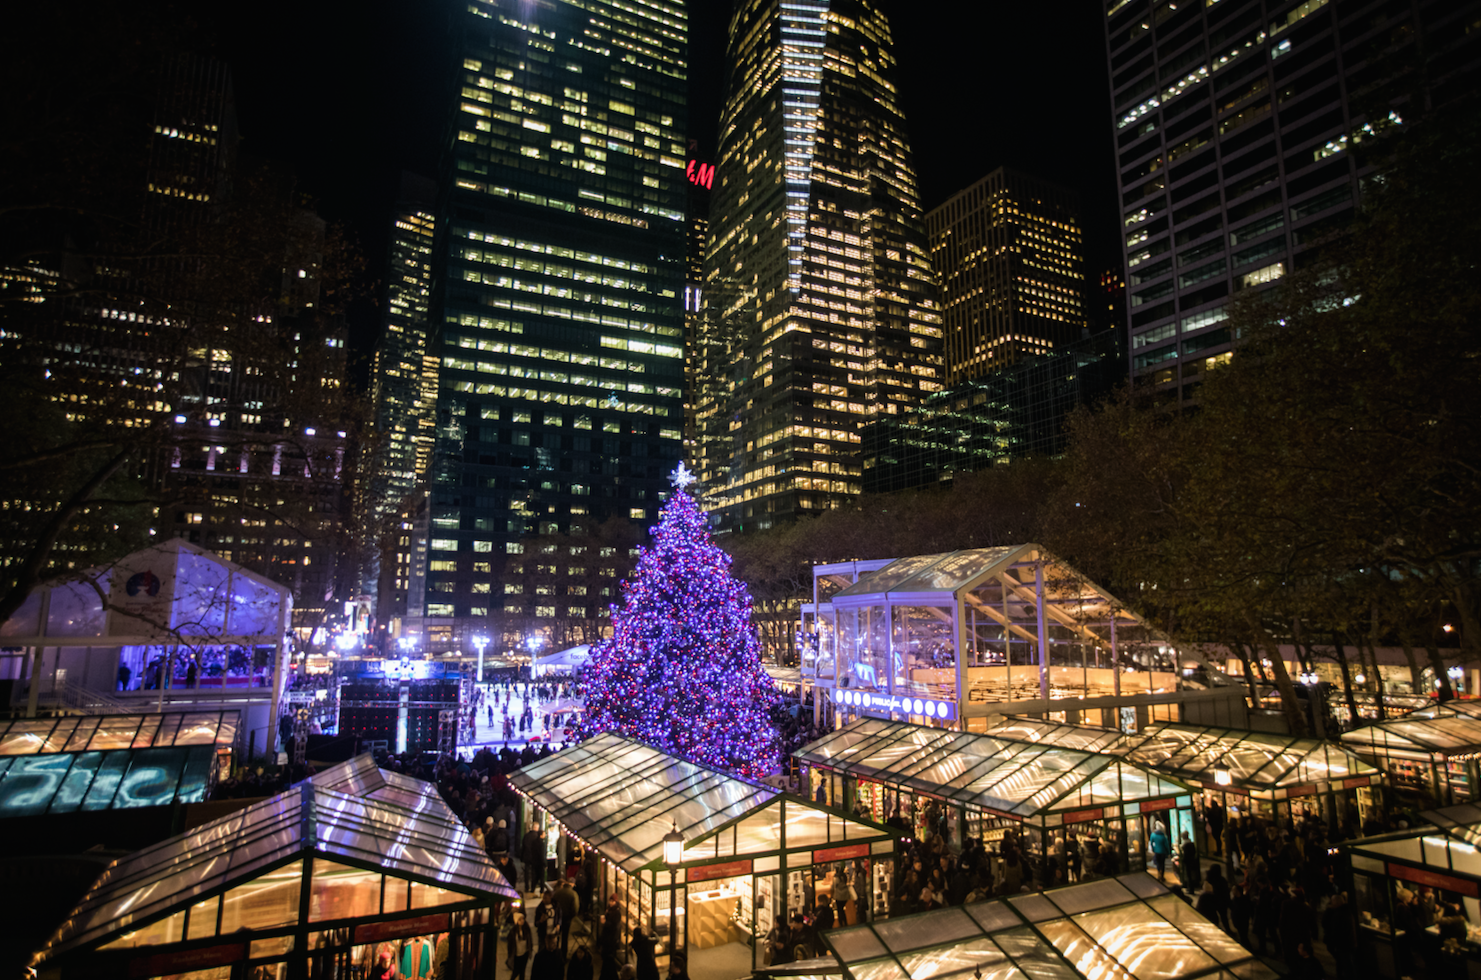 New York During Christmas Time.61 Days To Christmas Top 10 Places To Visit In New York City